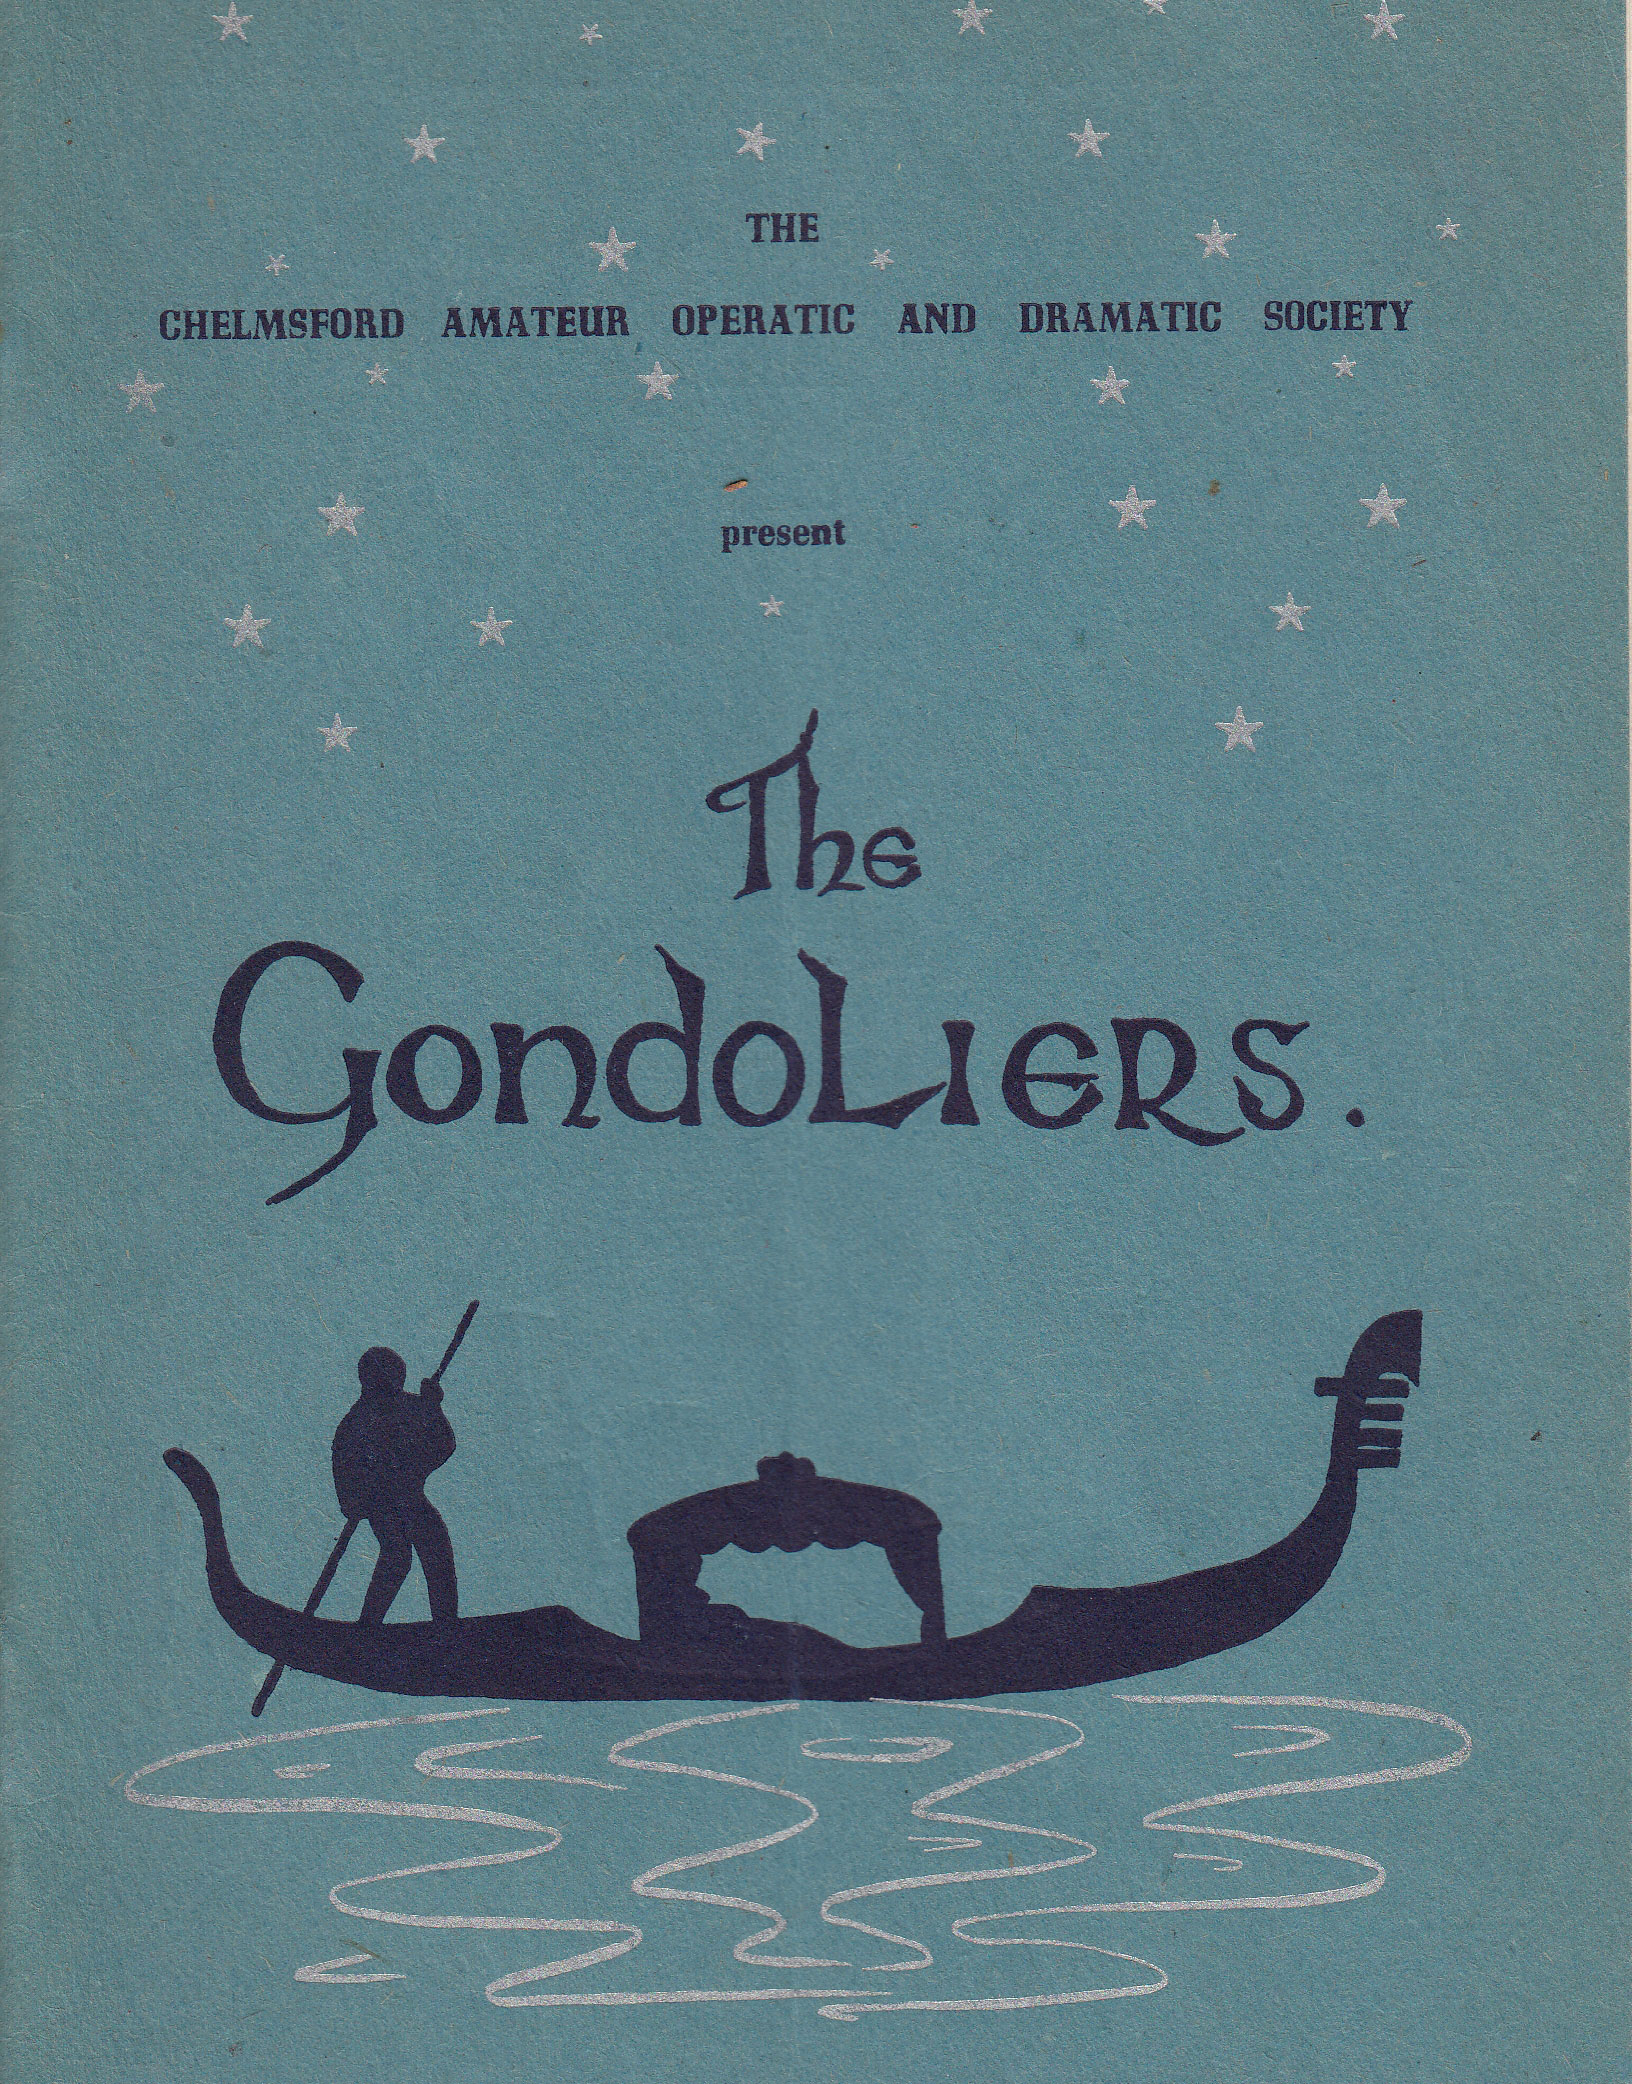 The Gondoliers (1922)